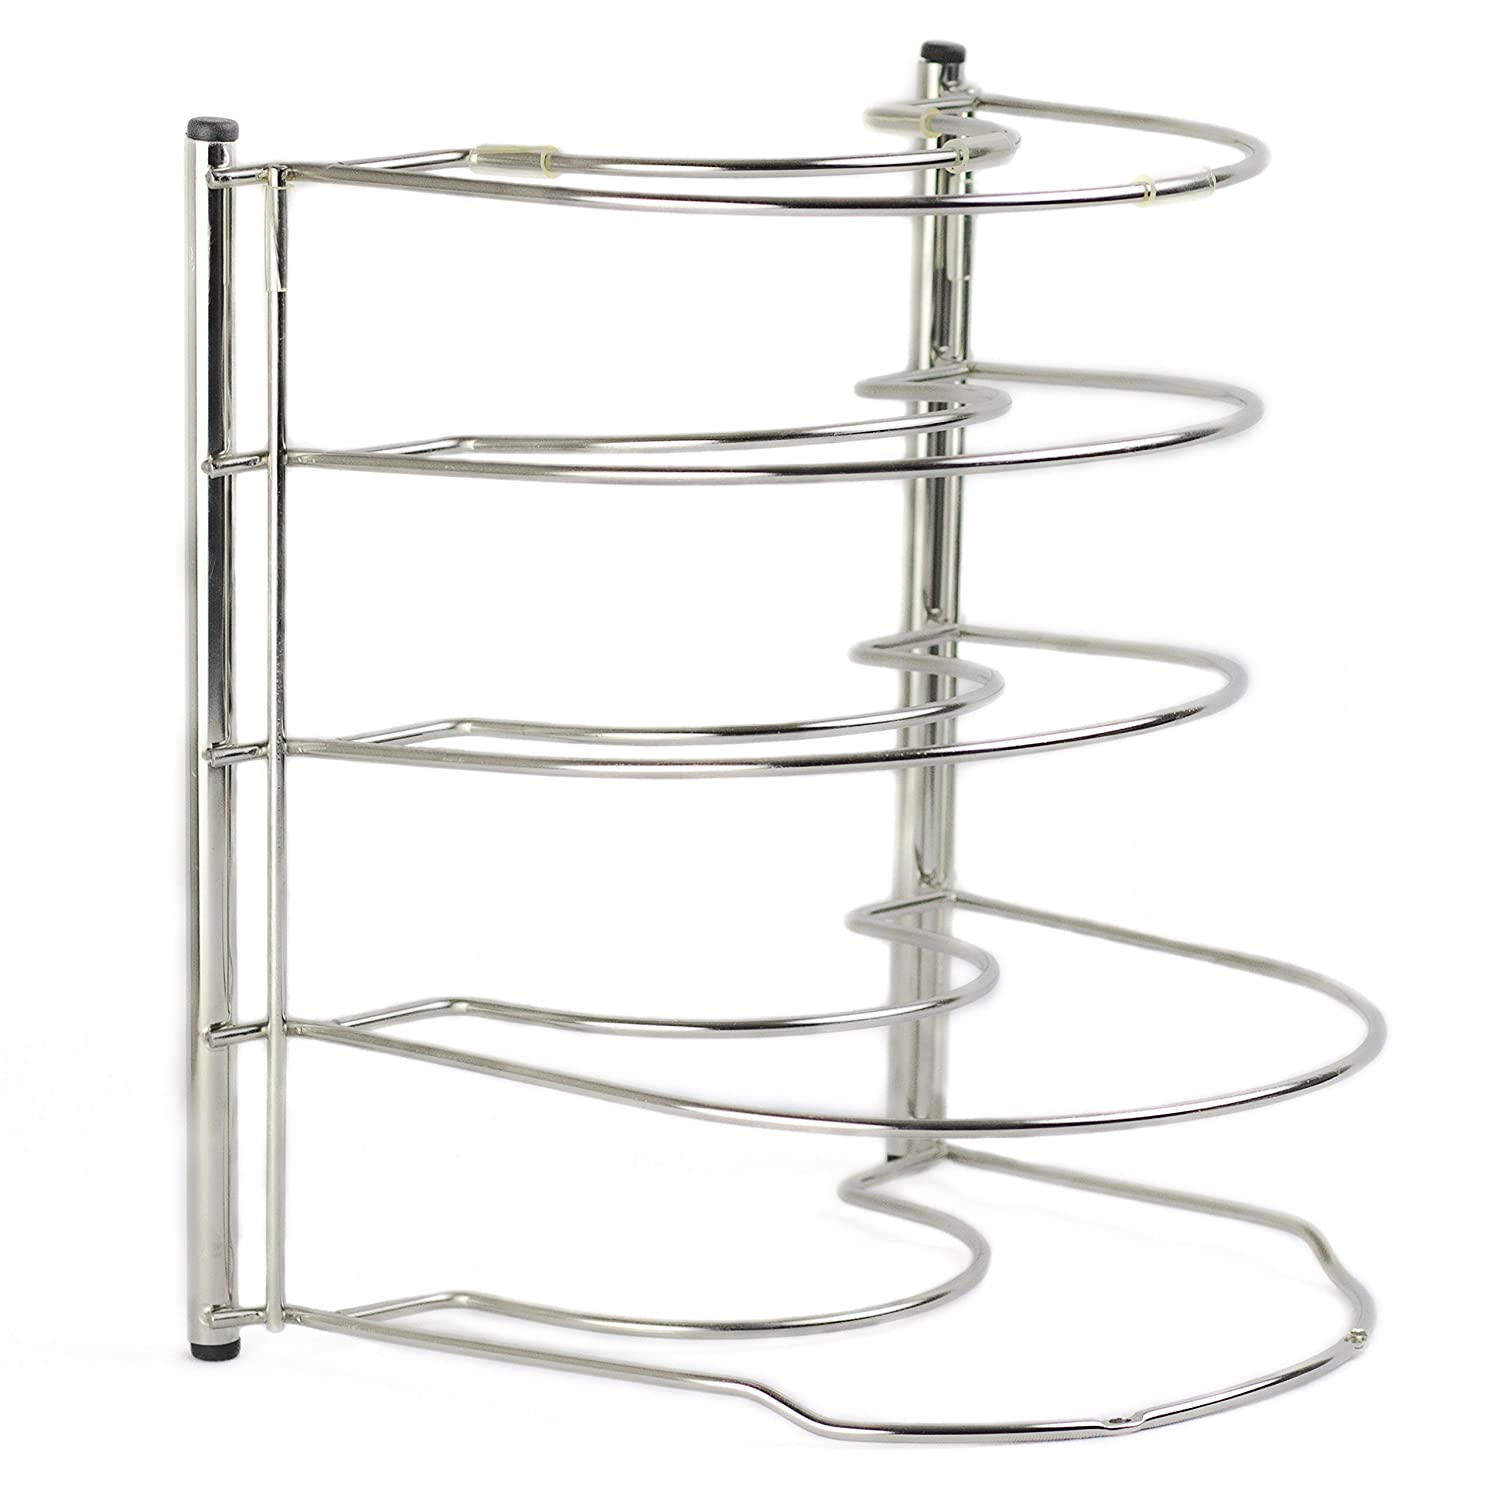 Ensteelo - Heavy duty Kitchen Pan Holder and Pot Organizer Rack | Made of high-grade Stainless Steel | Anti-slippery and anti-scratch silicone covers | No assembly required